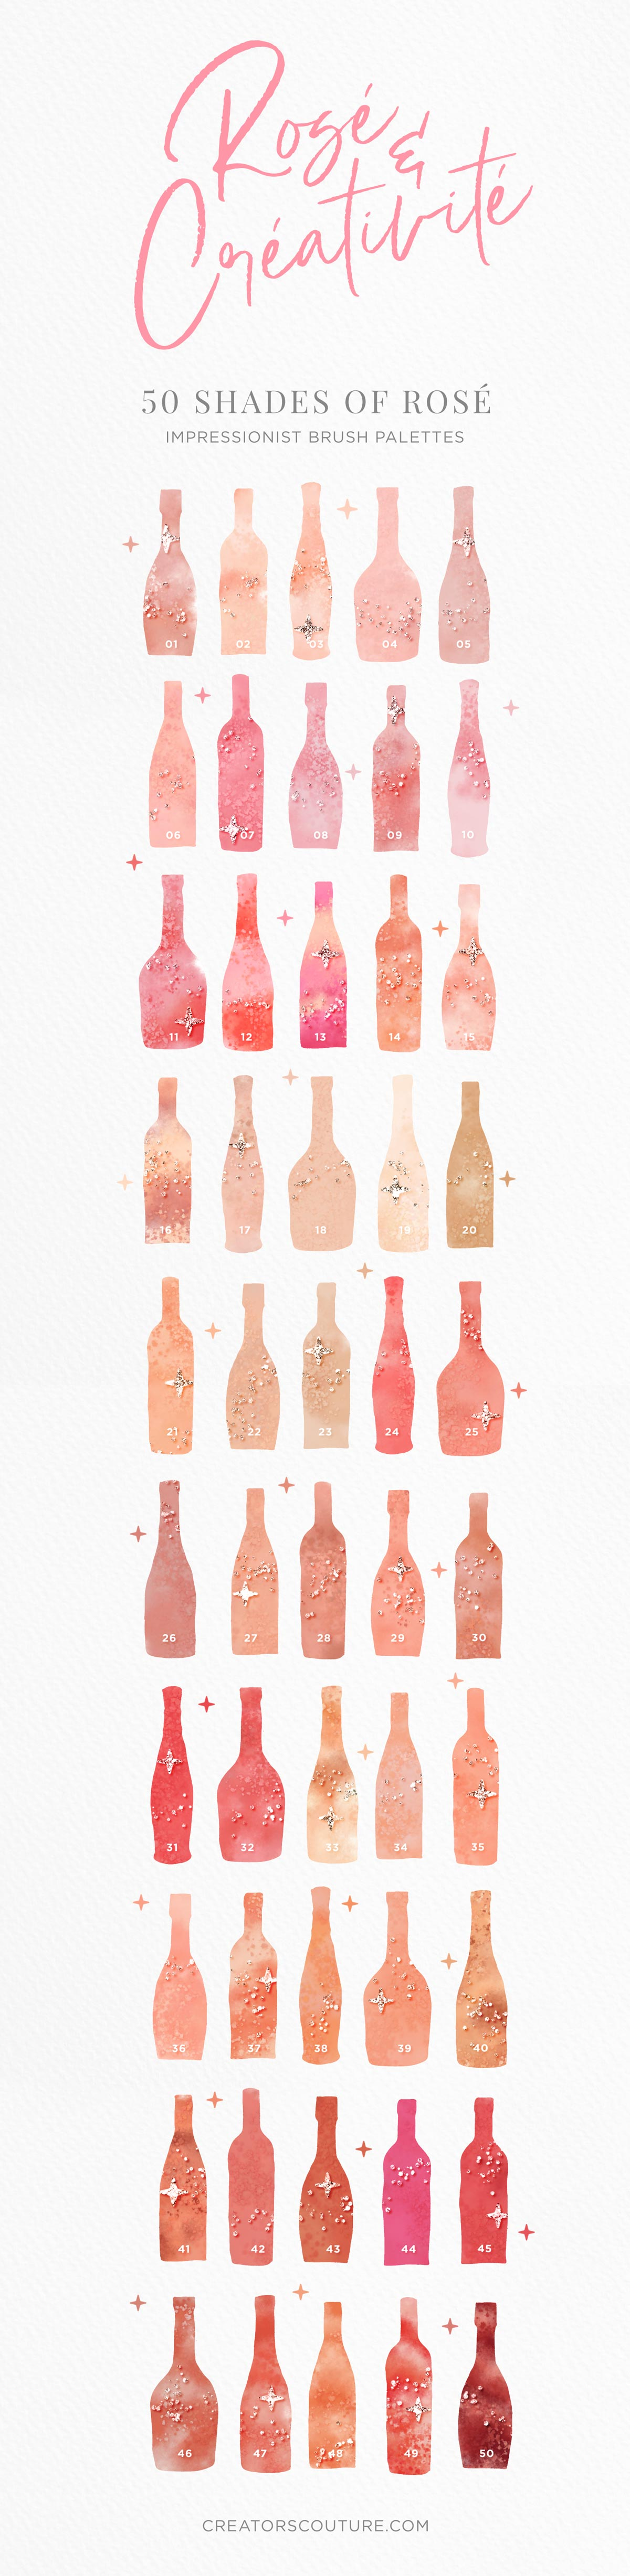 Rosé wine inspired color palettes